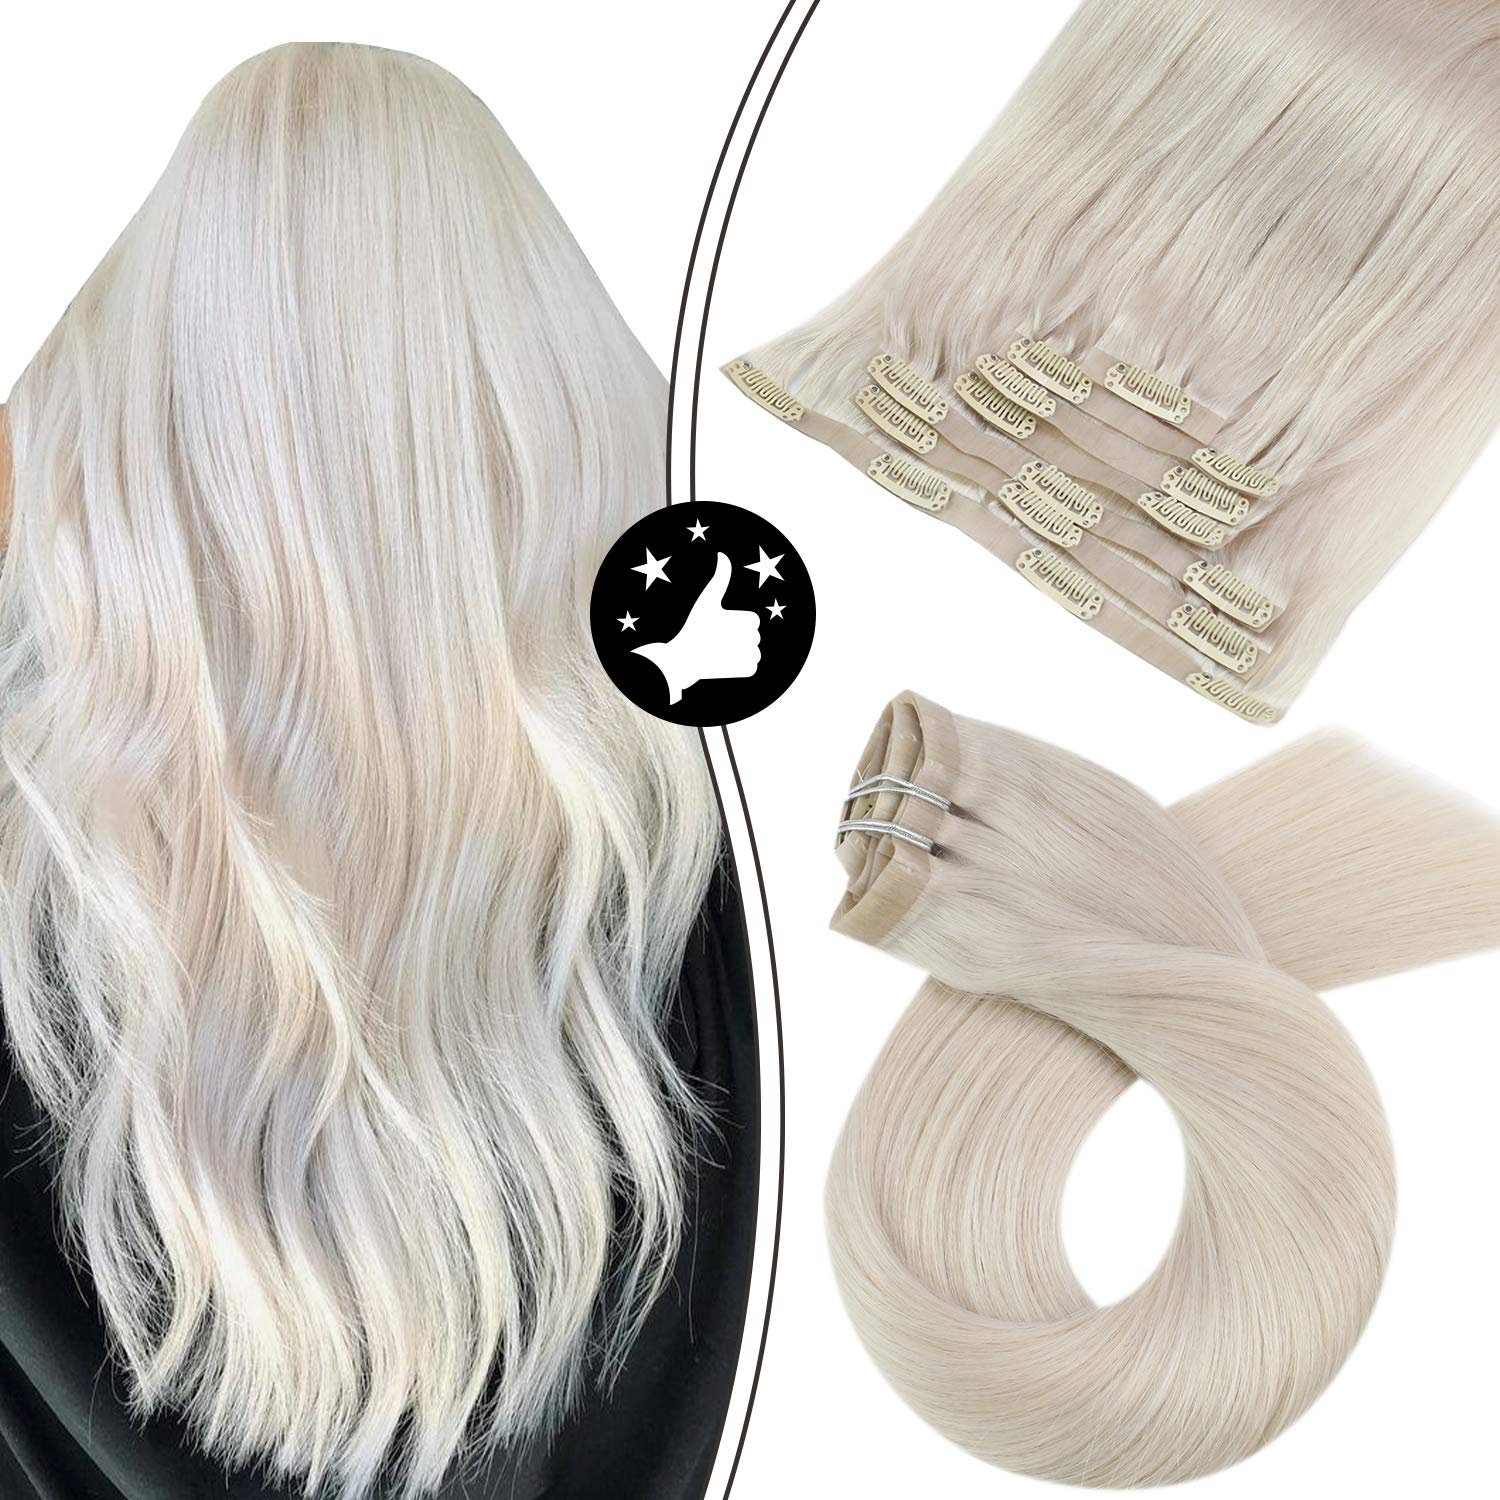 Seamless Clip in Human Hair Extensions Real Hair Brazilian White Blonde 7pcs Machine Remy Extensions Straight Invisible Clip ins